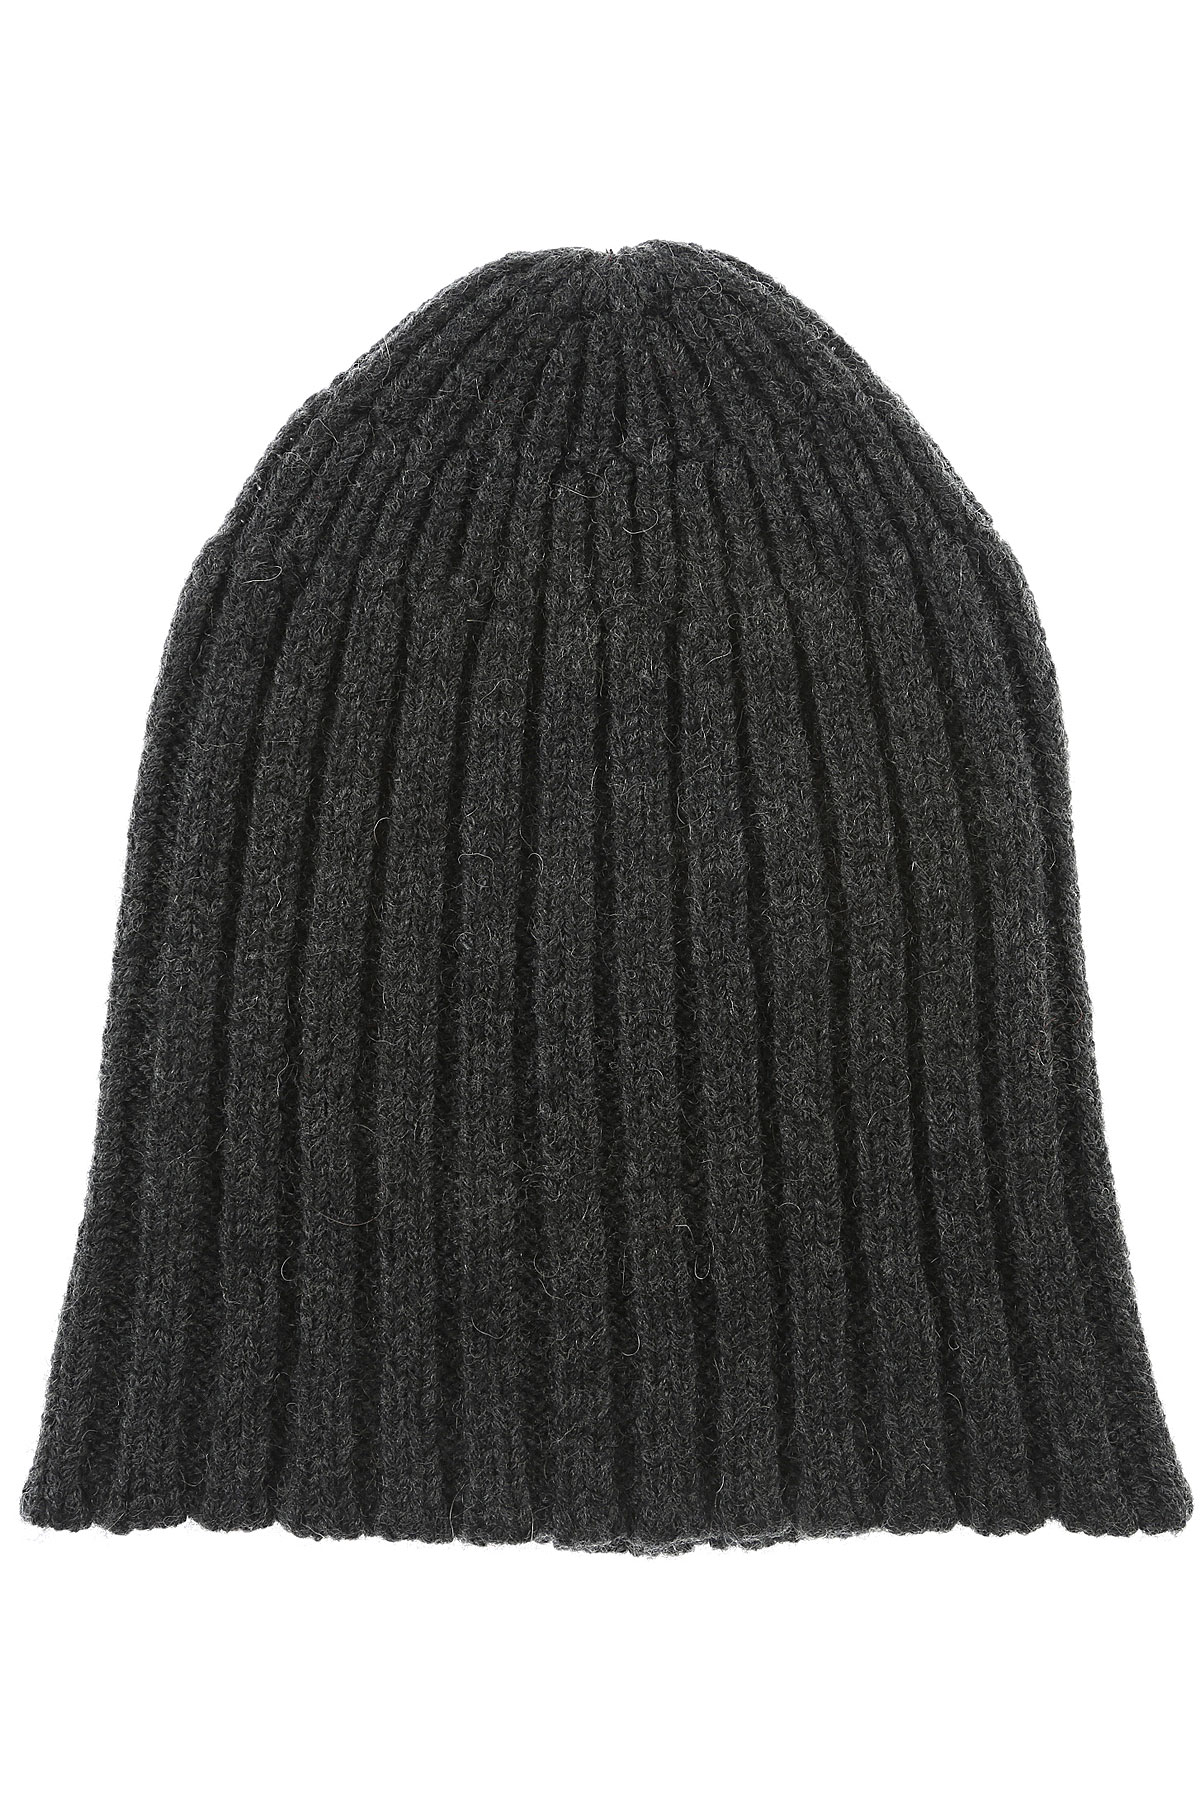 Image of Roberto Collina Hat for Women, antracite, Extrafine Merino Wool, 2017